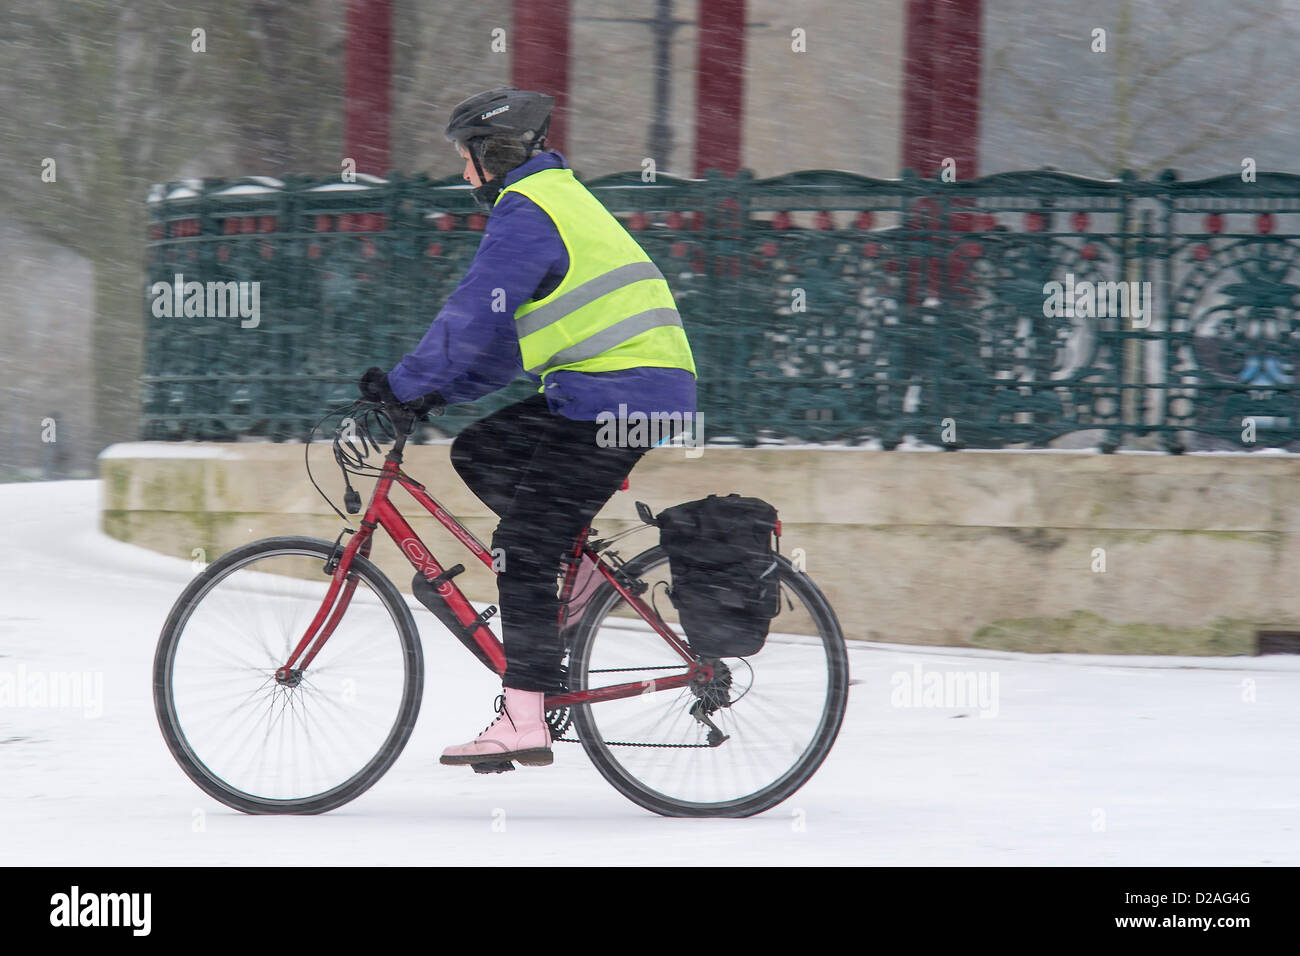 Snowfall makes commuting more challenging but does not stop dogwalkers or mothers taking their small children out - Stock Image